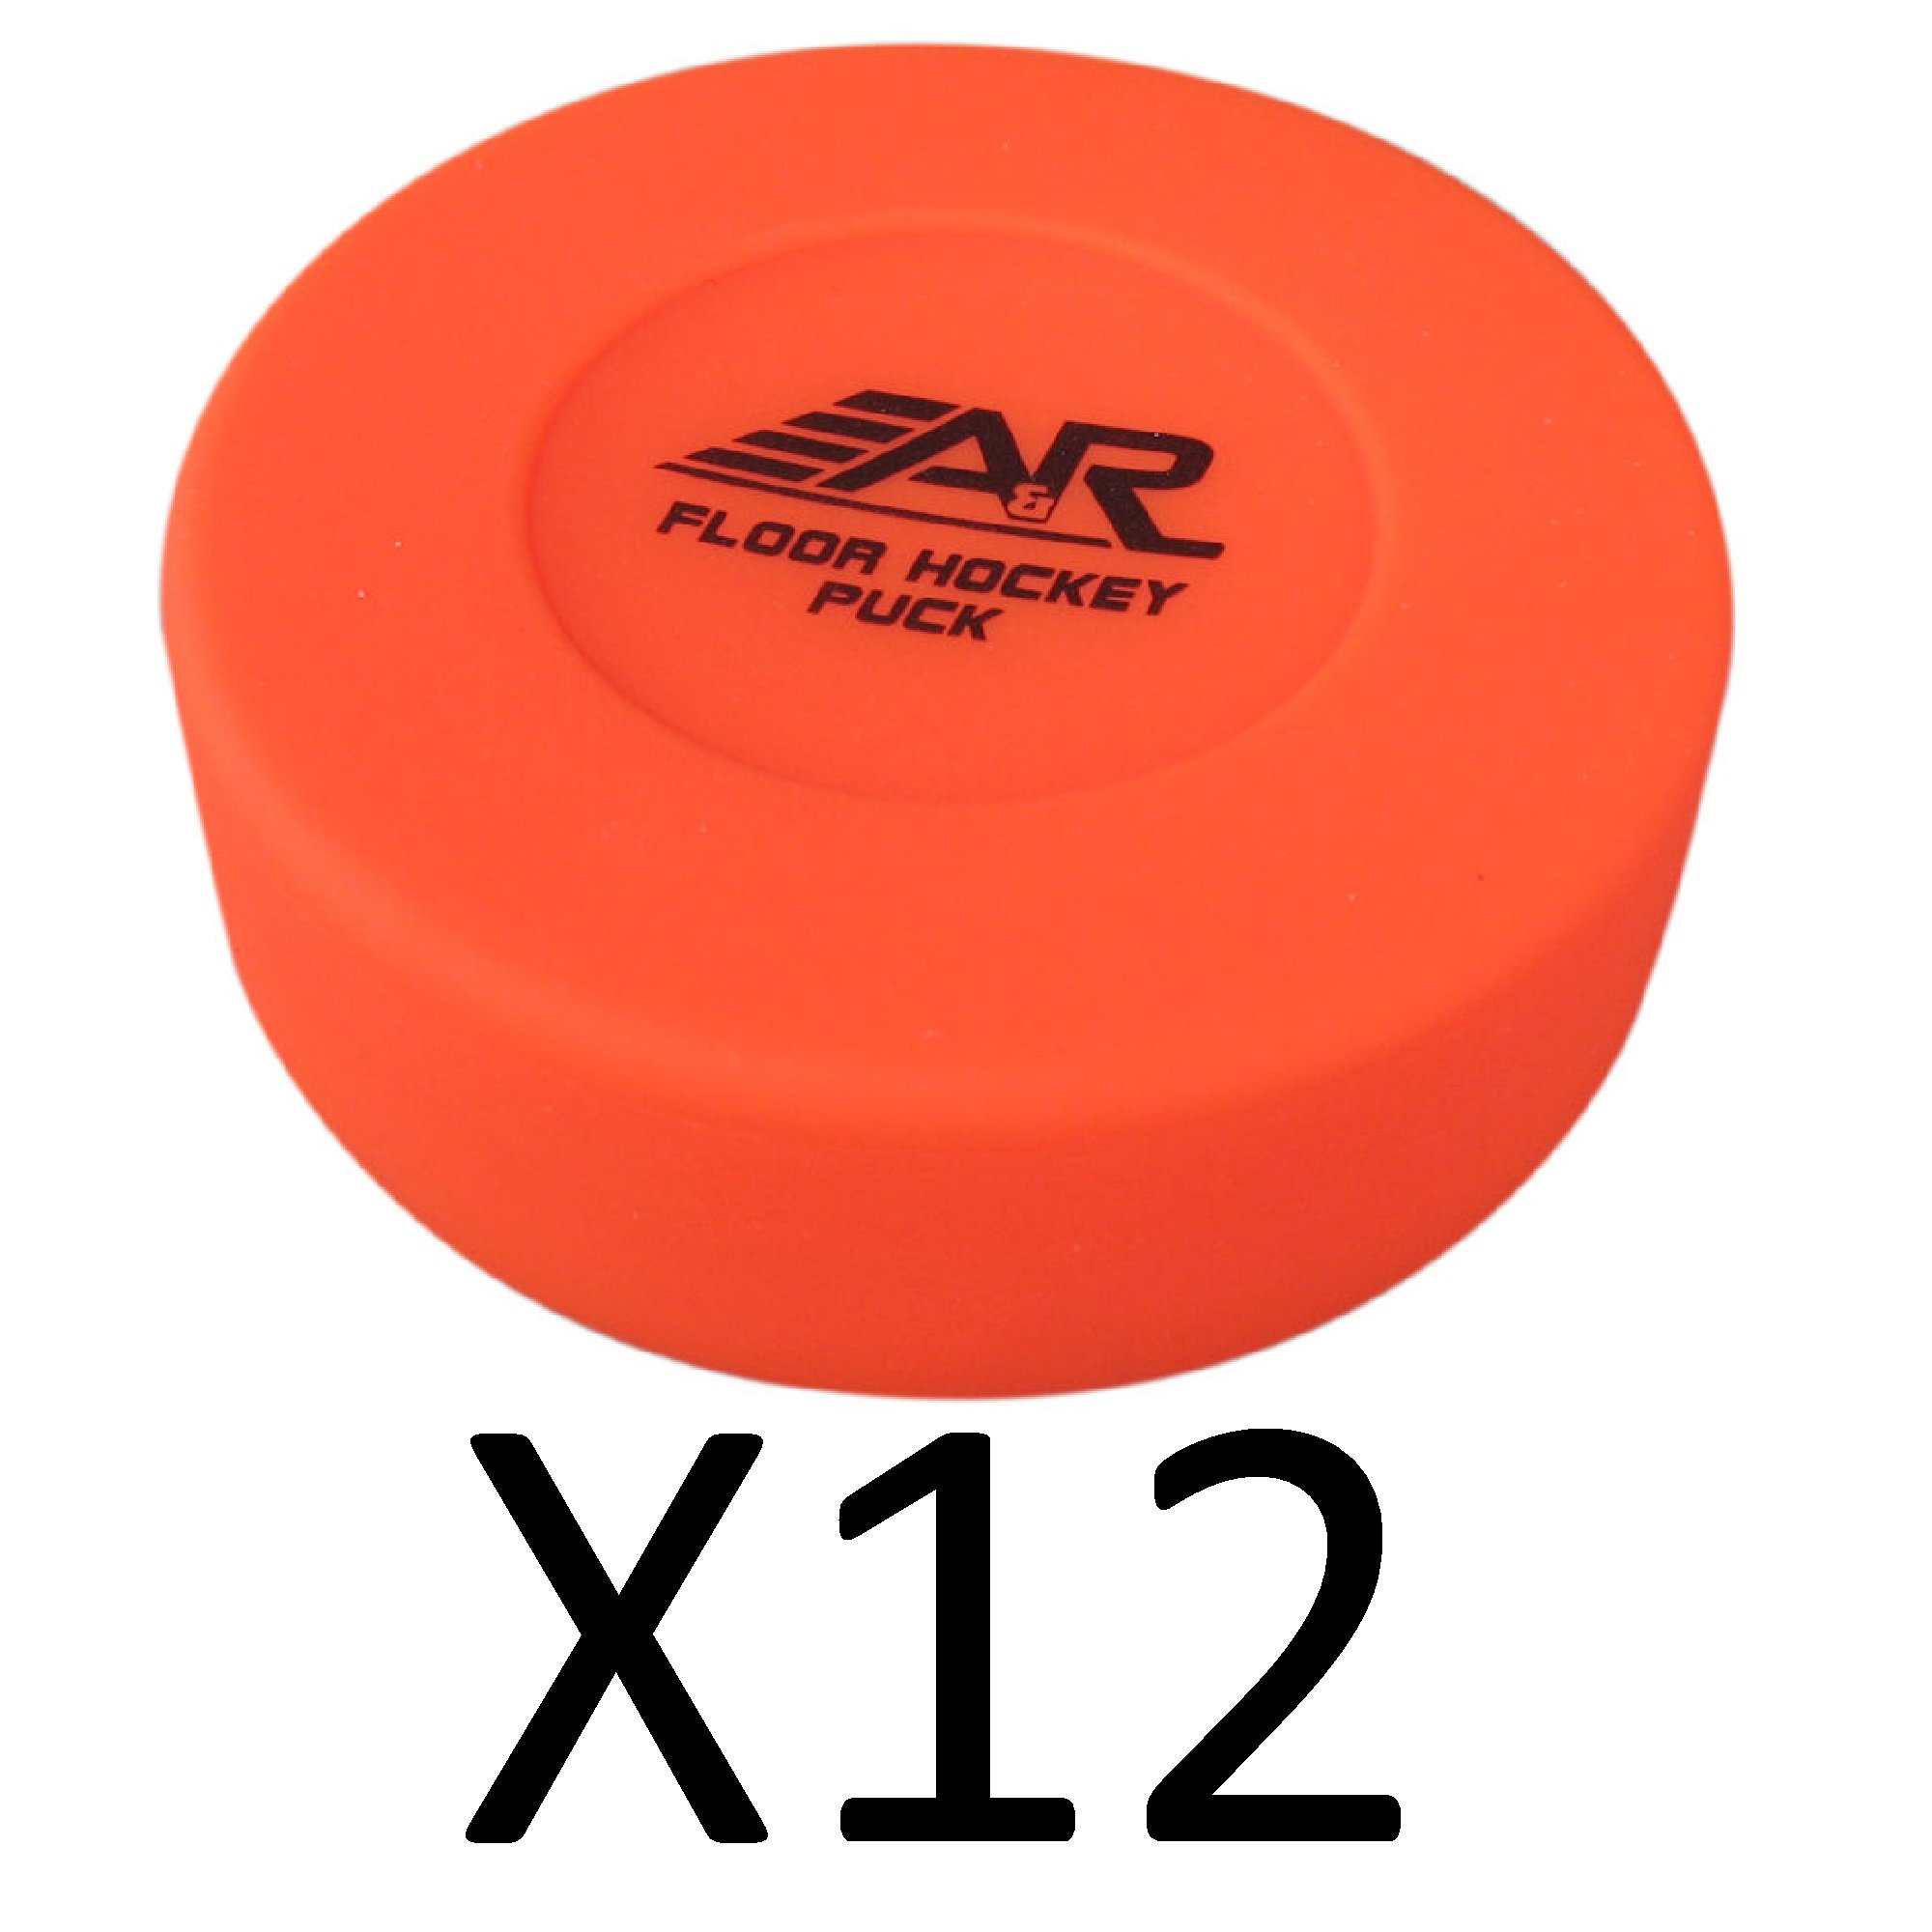 A&R Rubber Construction Floor Hockey Puck Durable Quality IFLPUCK (12-Pack)